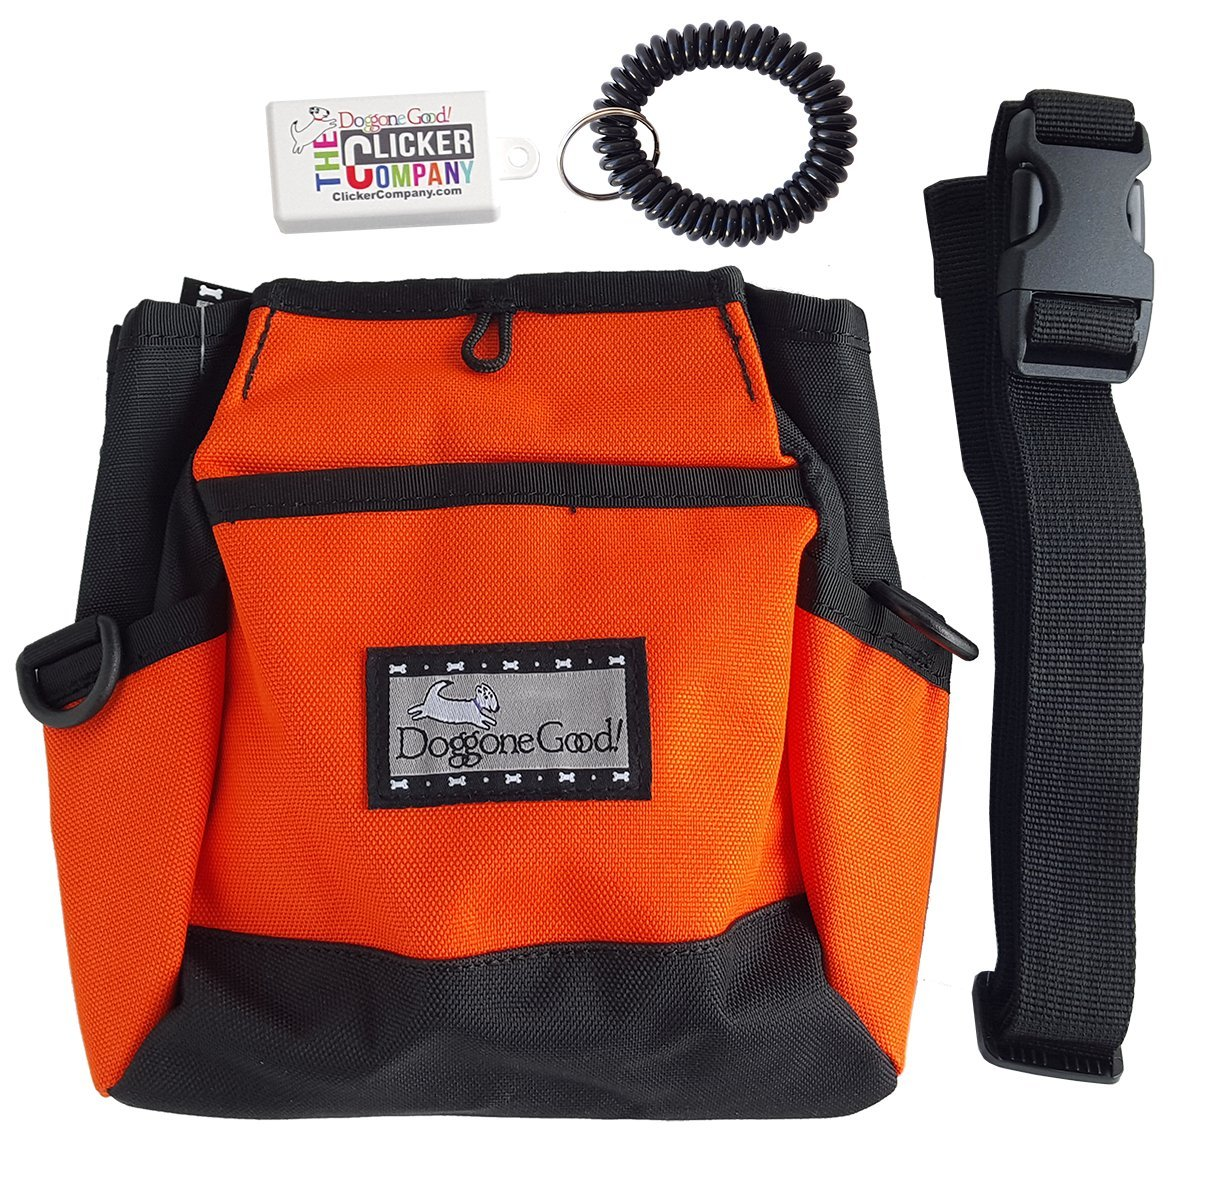 orange with belt, clicker, wrist coil orange with belt, clicker, wrist coil Rapid Rewards Deluxe Treat Pouch w FREE Belt, Clicker, and Wrist CoilBuy Directly From the Manufacturer